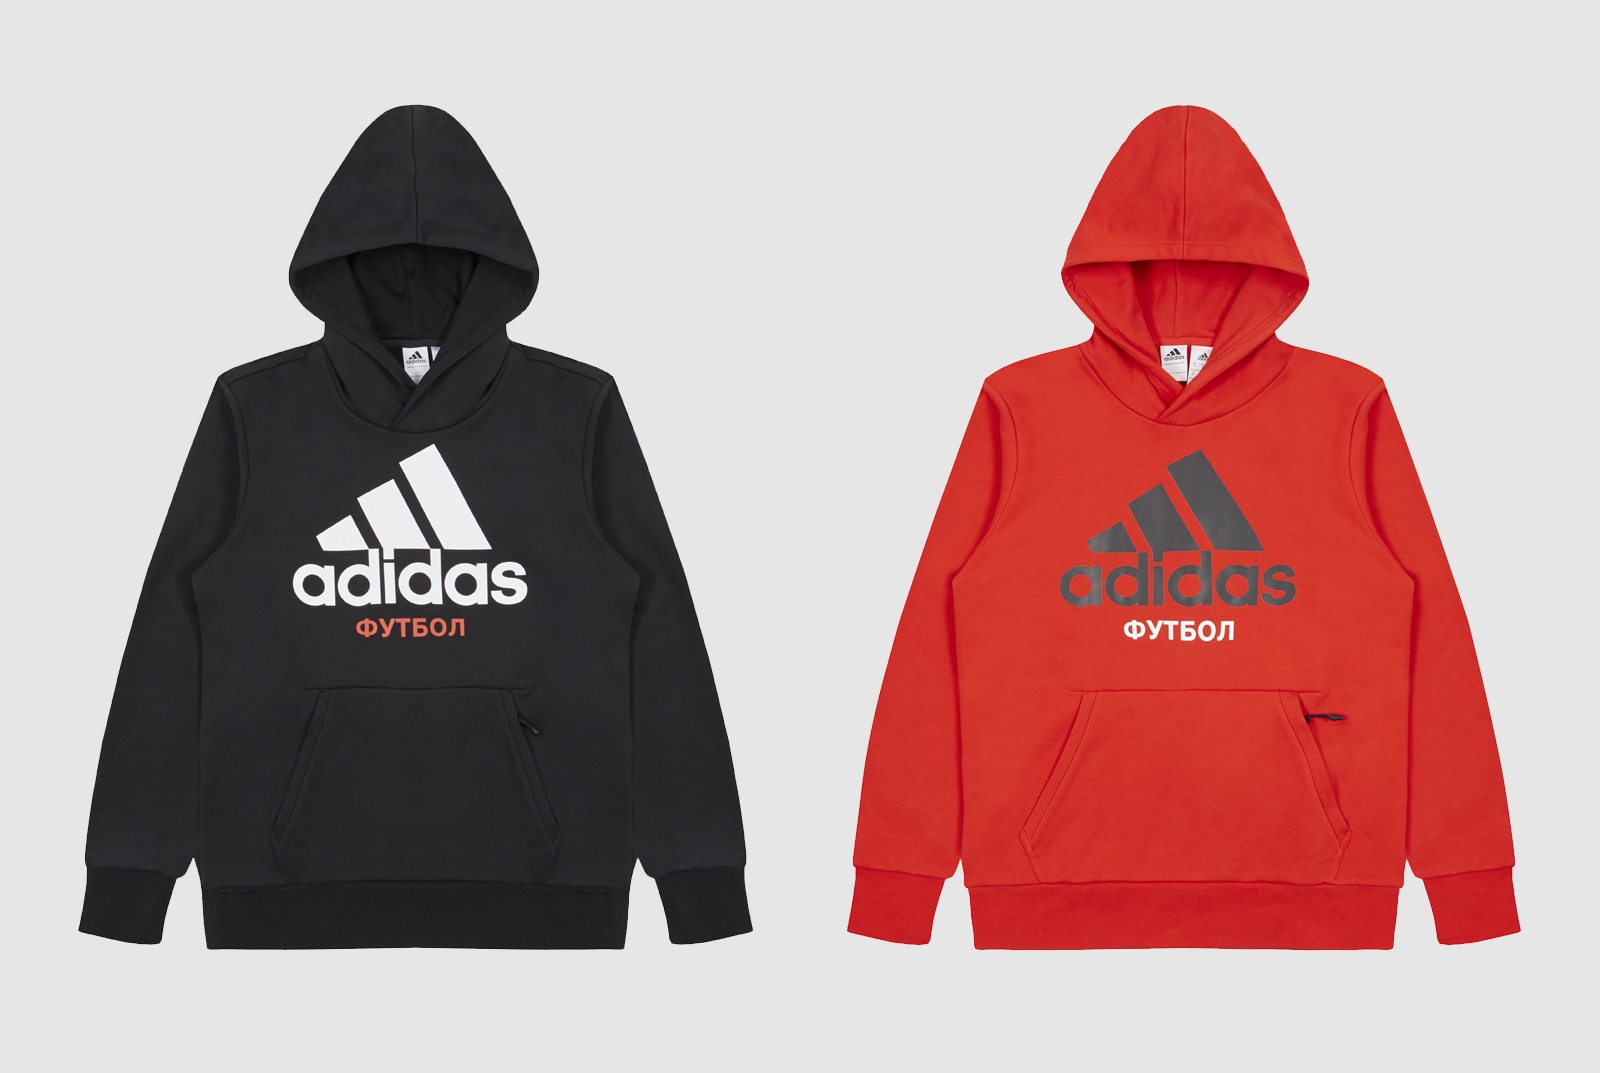 gosha-rubchinskiy-adidas-soccer-2017aw-3rd-delivery-release-20171028